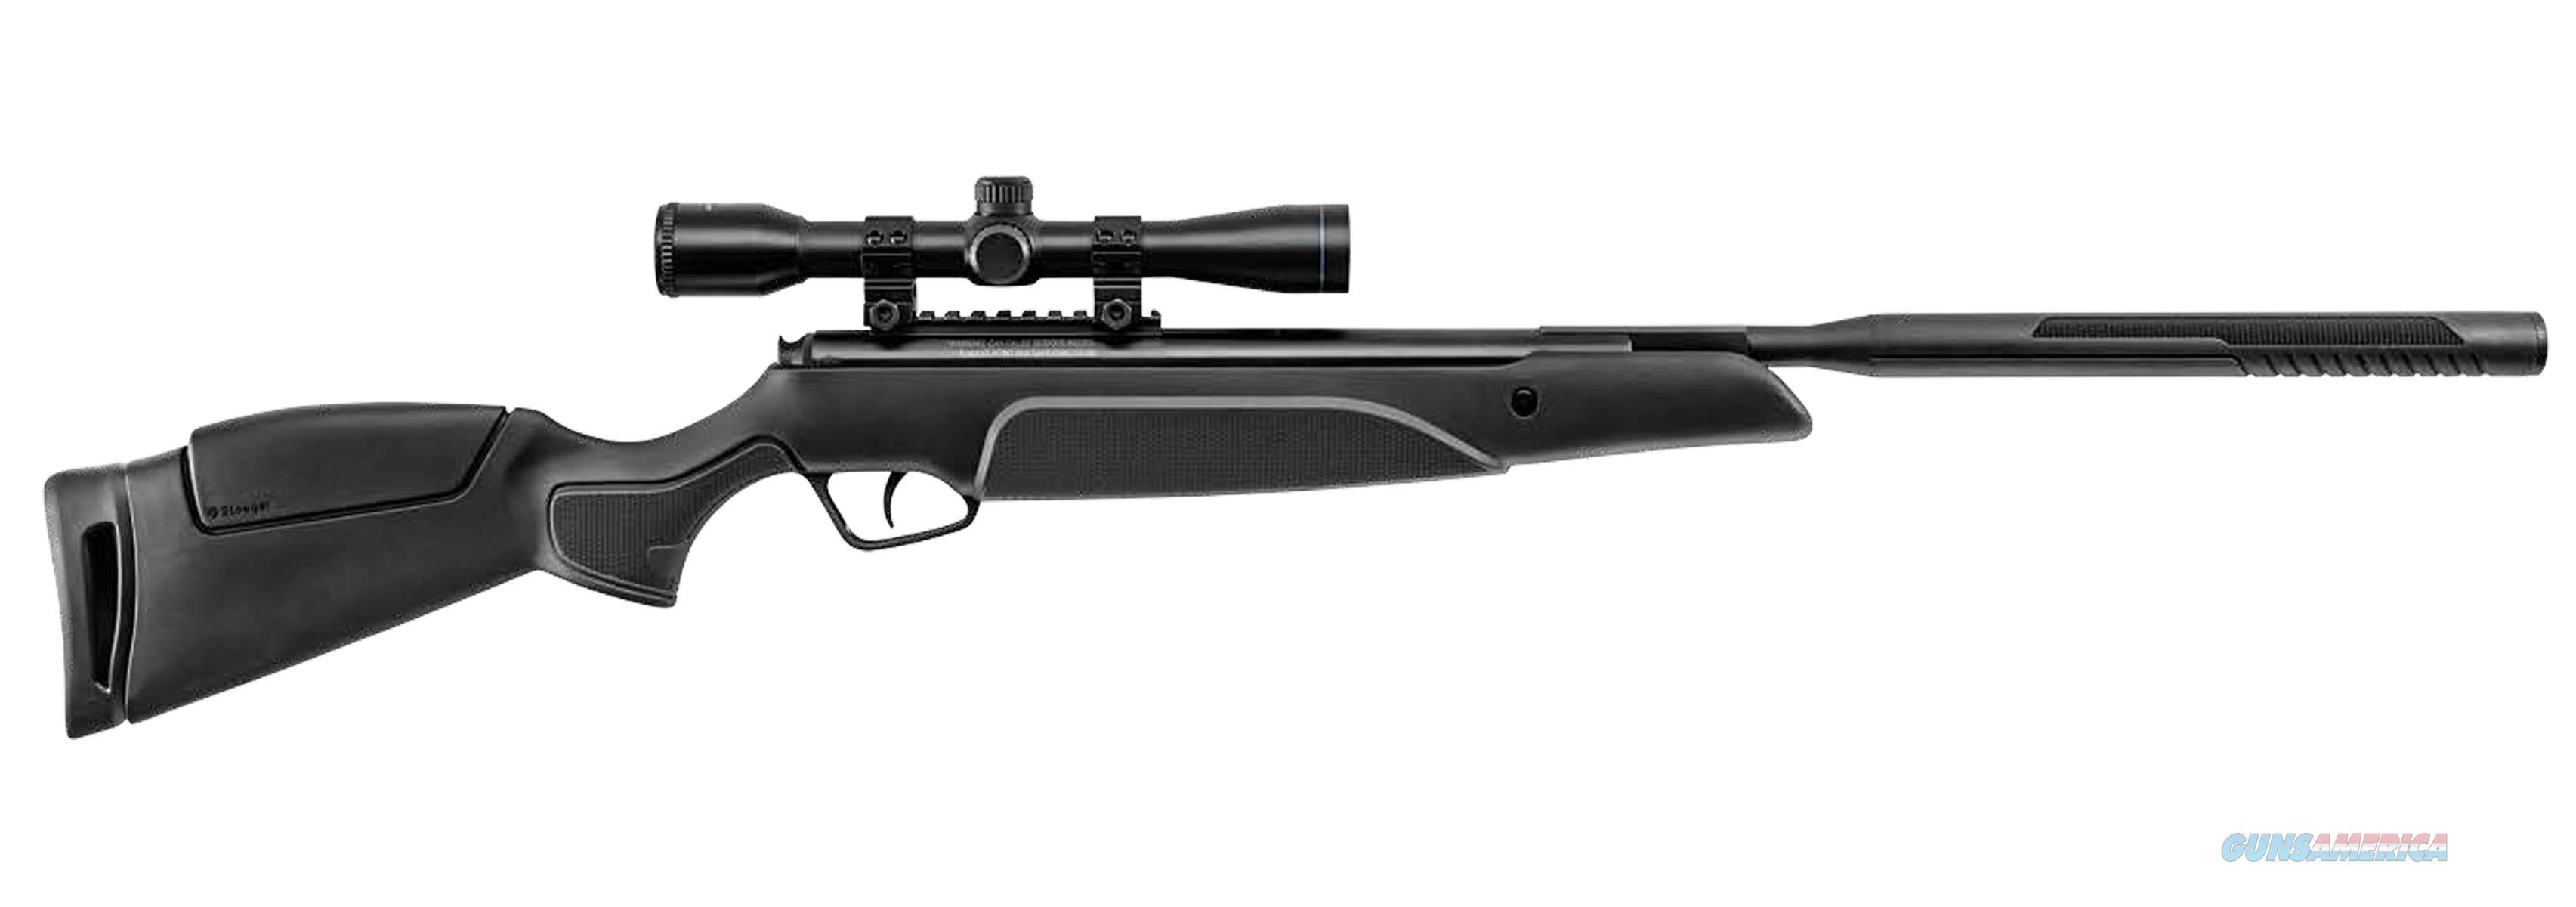 Stoeger A30 S2 Suppressor Air Rifle .22 Cal 4x32mm Scope 30430   Non-Guns > Air Rifles - Pistols > Adult High Velocity